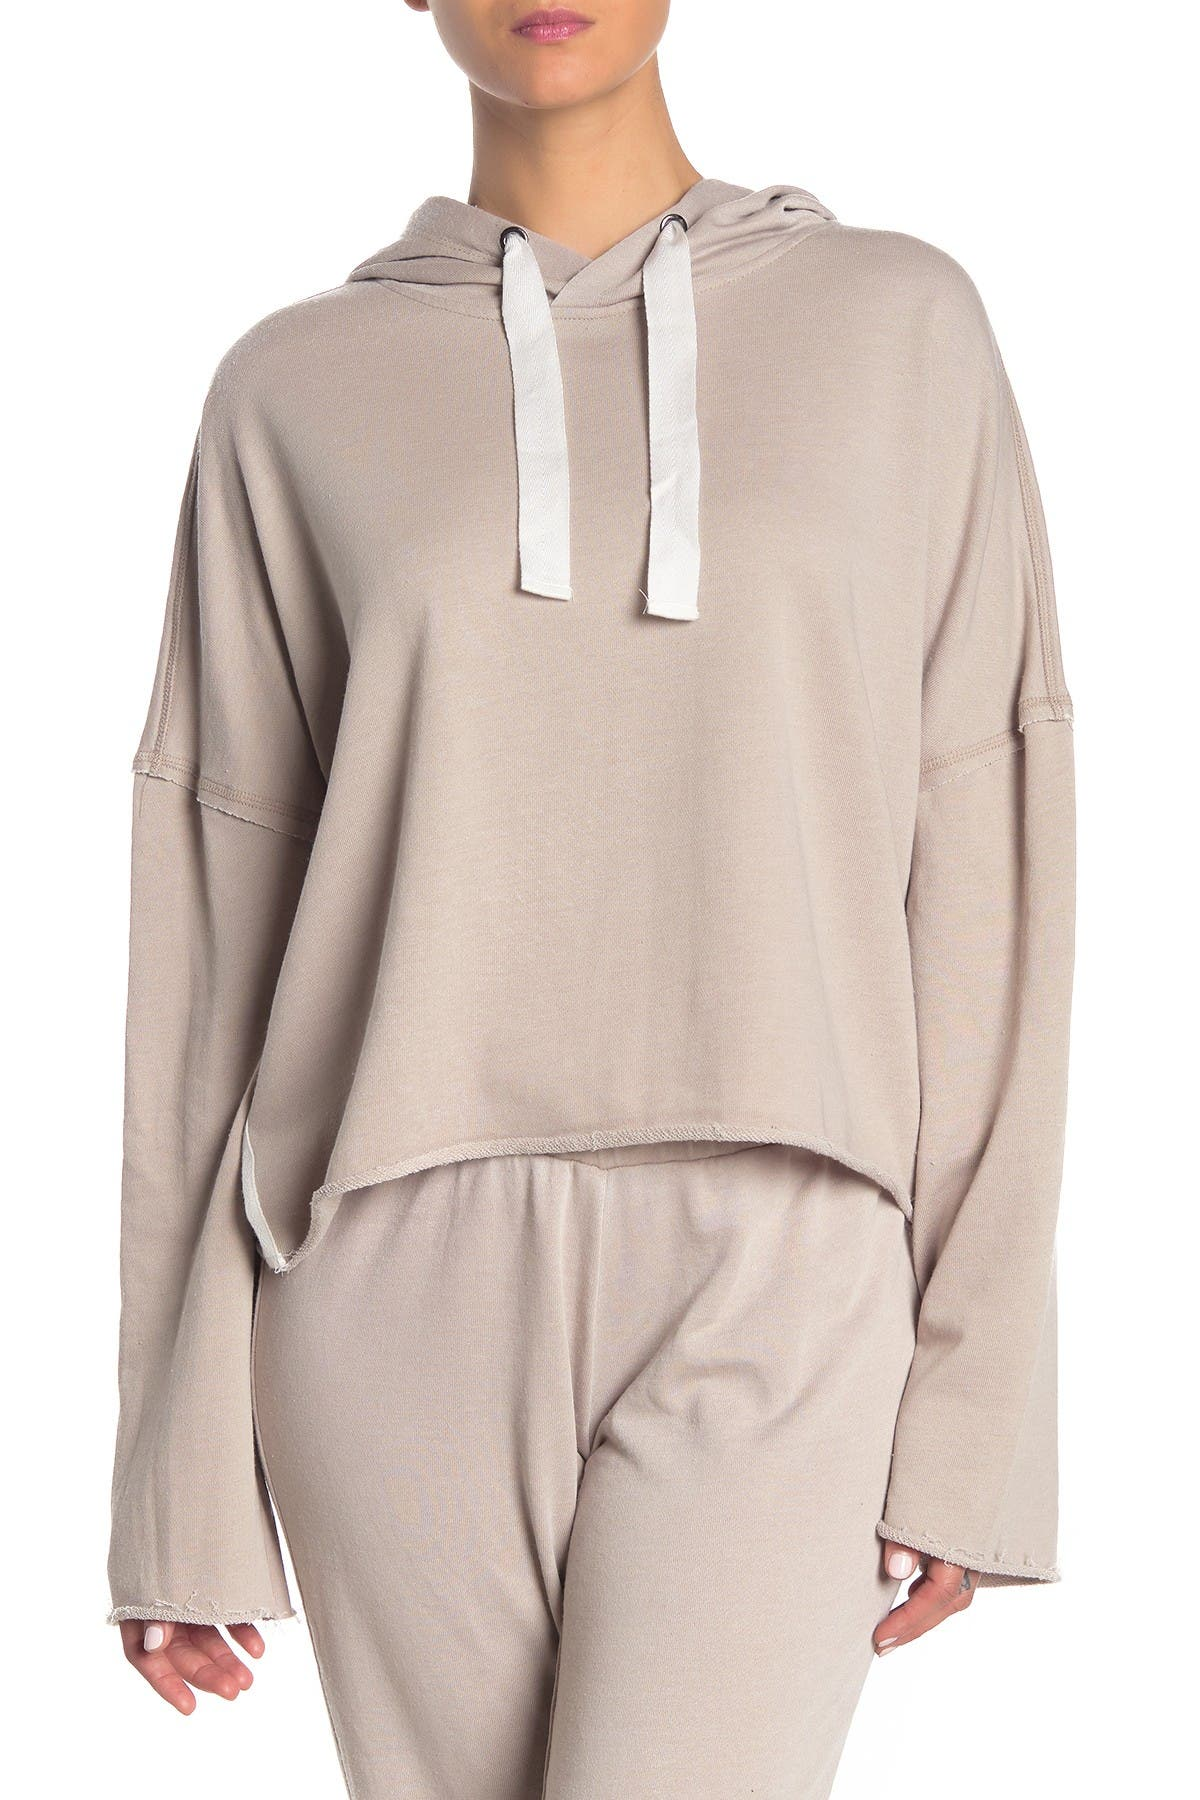 Image of Betsey Johnson Raw Edge Cropped Hoodie